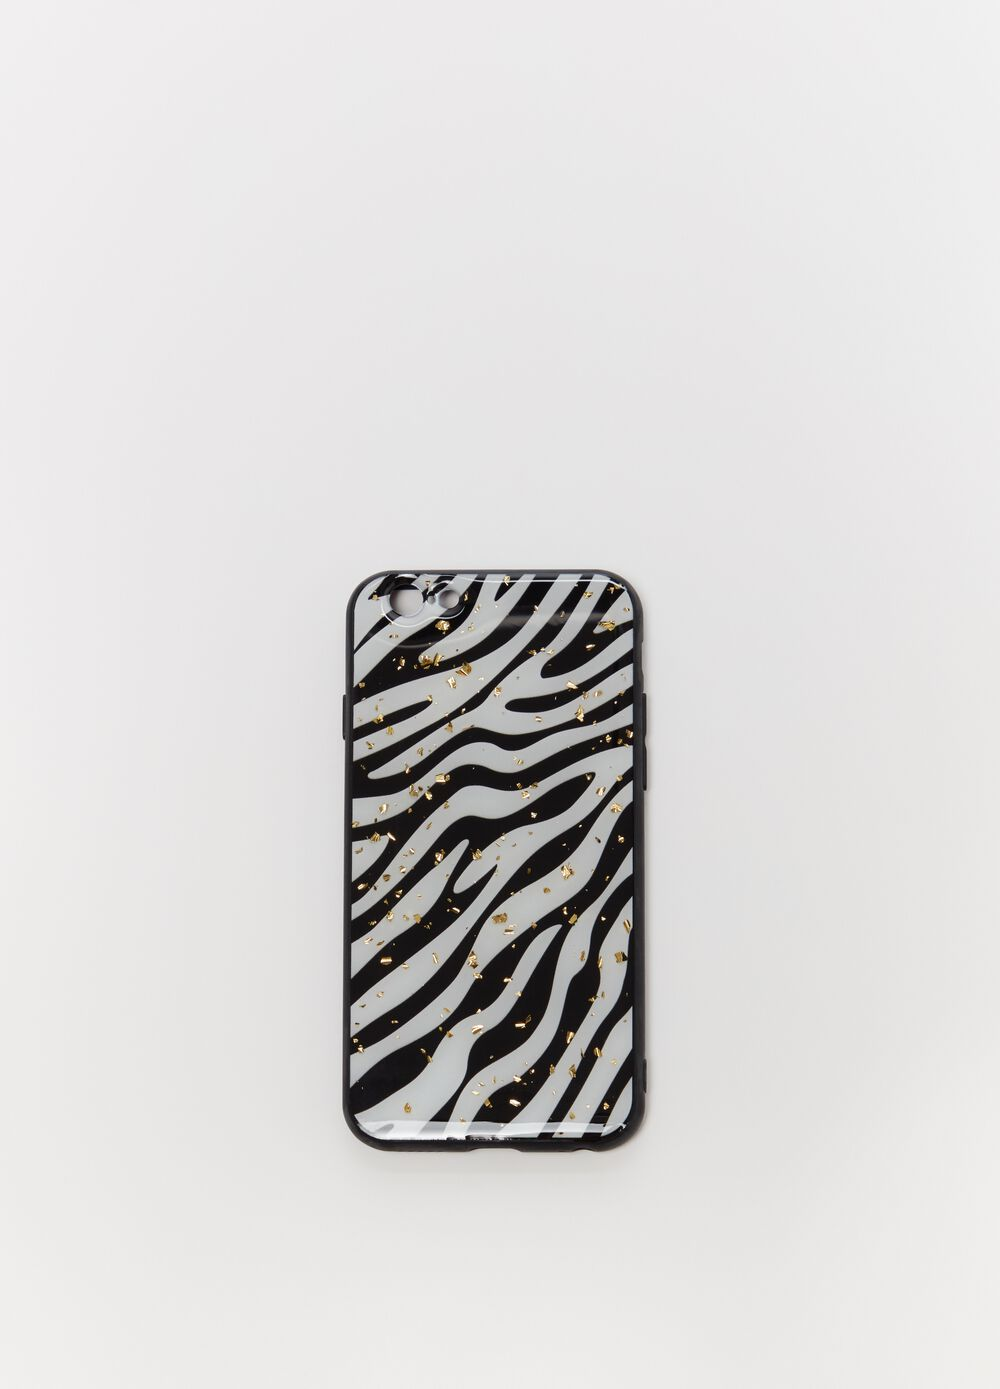 Cover for iPhone with zebra print